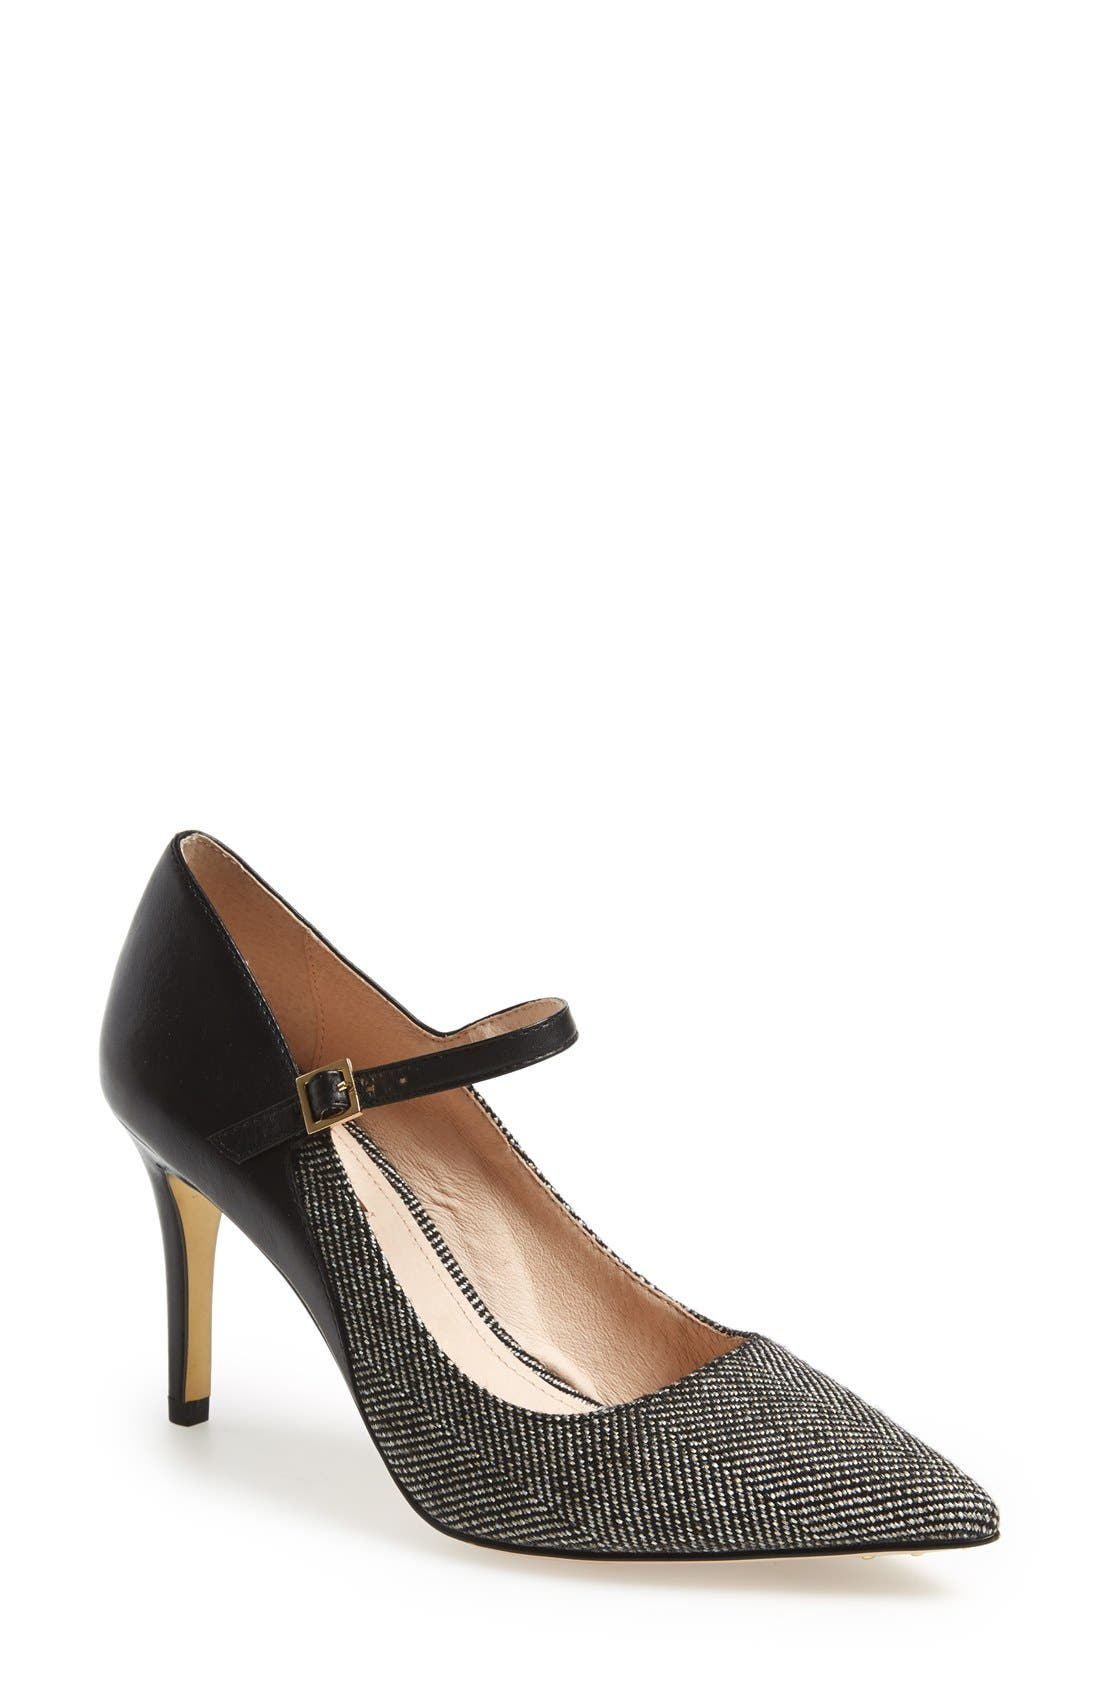 Main Image - Louise et Cie 'Ione' Mary Jane Pump (Women)